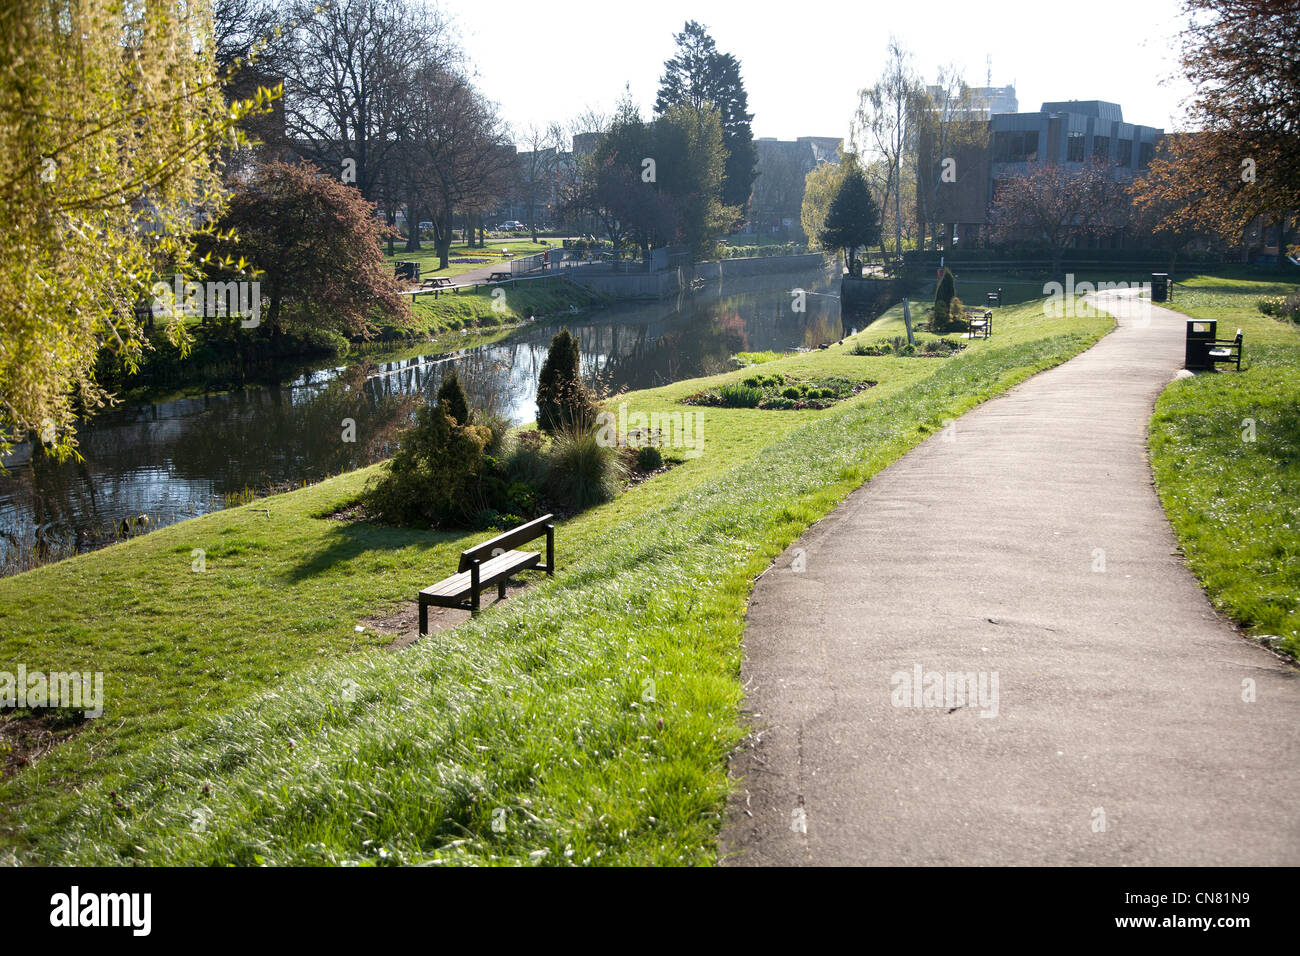 Chelmsford town center showing river chelmer and bridge in distance - Stock Image